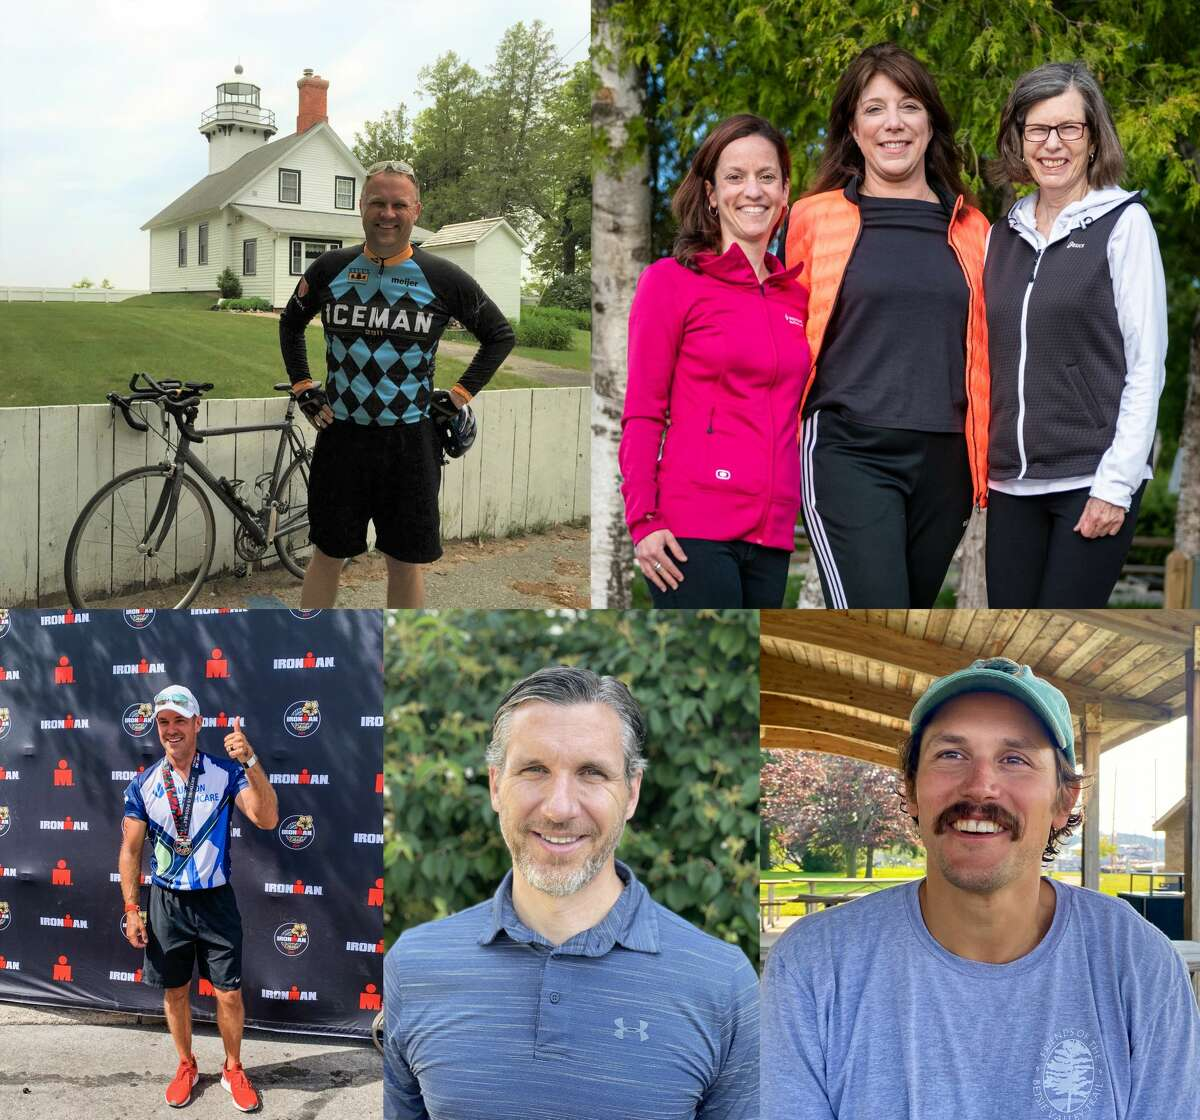 Area residents will compete in the Ironman 70.3 competition in Frankfort on Sept. 12 to raise money for five local nonprofits.